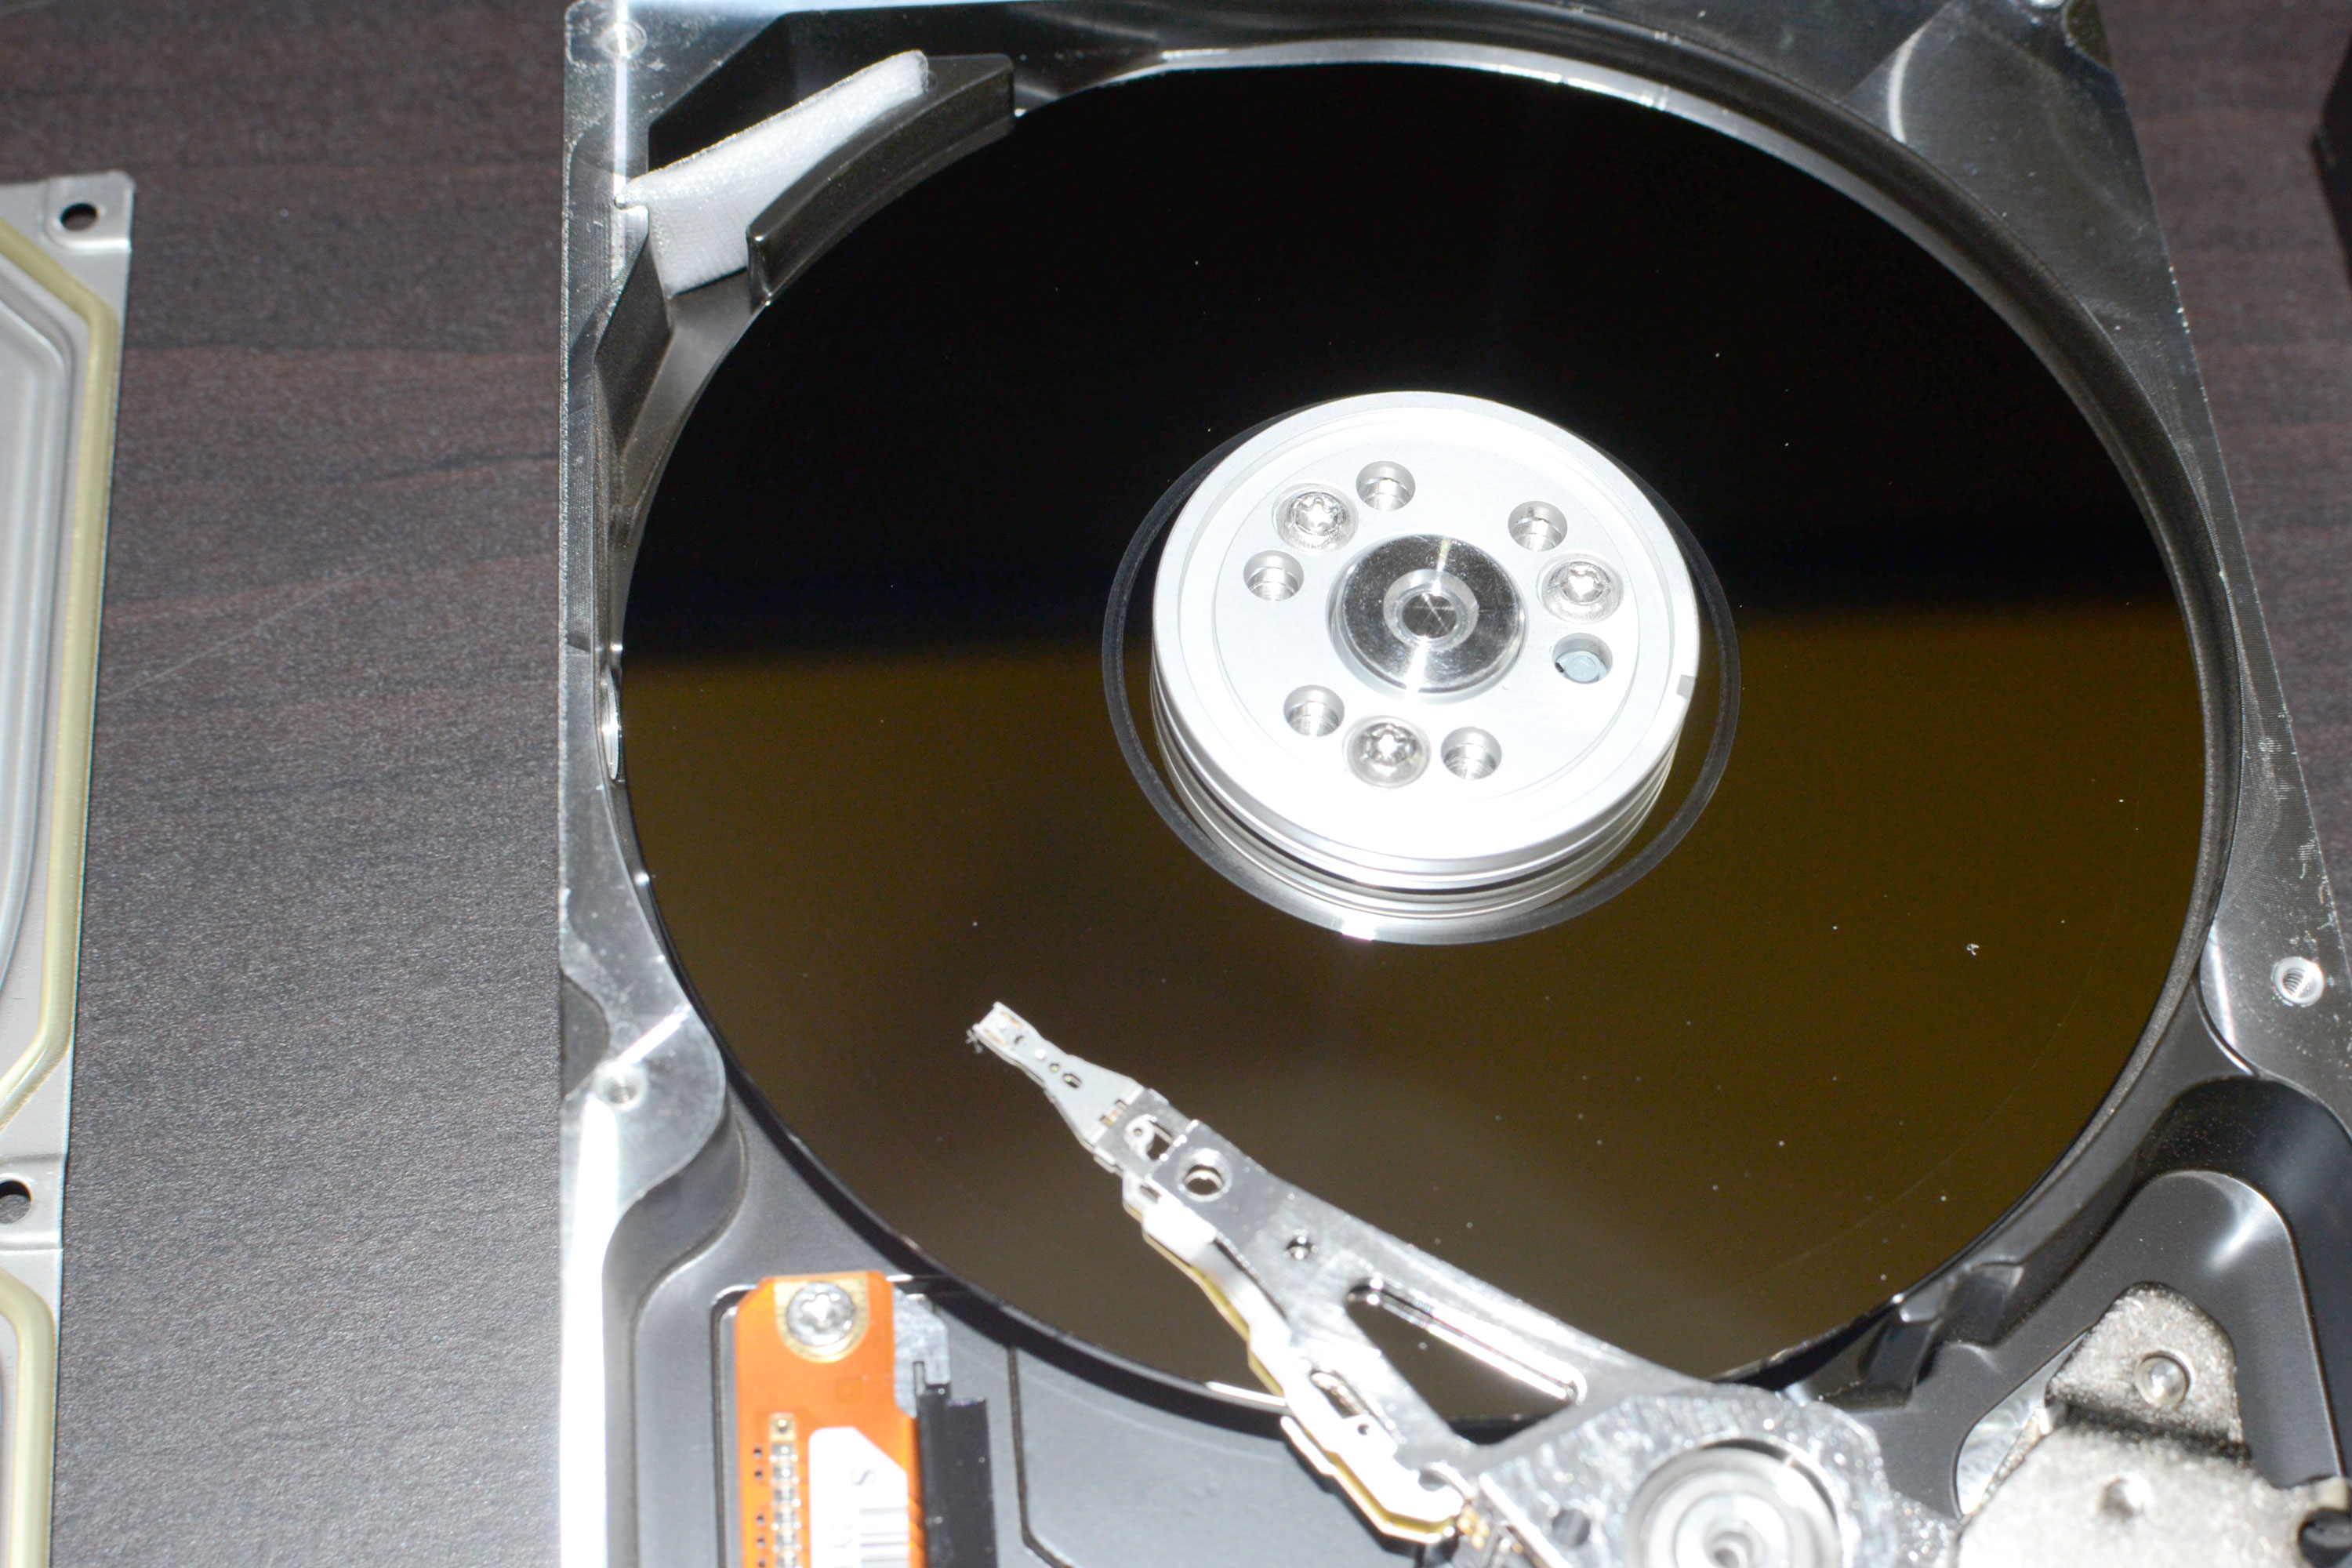 How to recover files from external hard disk crash